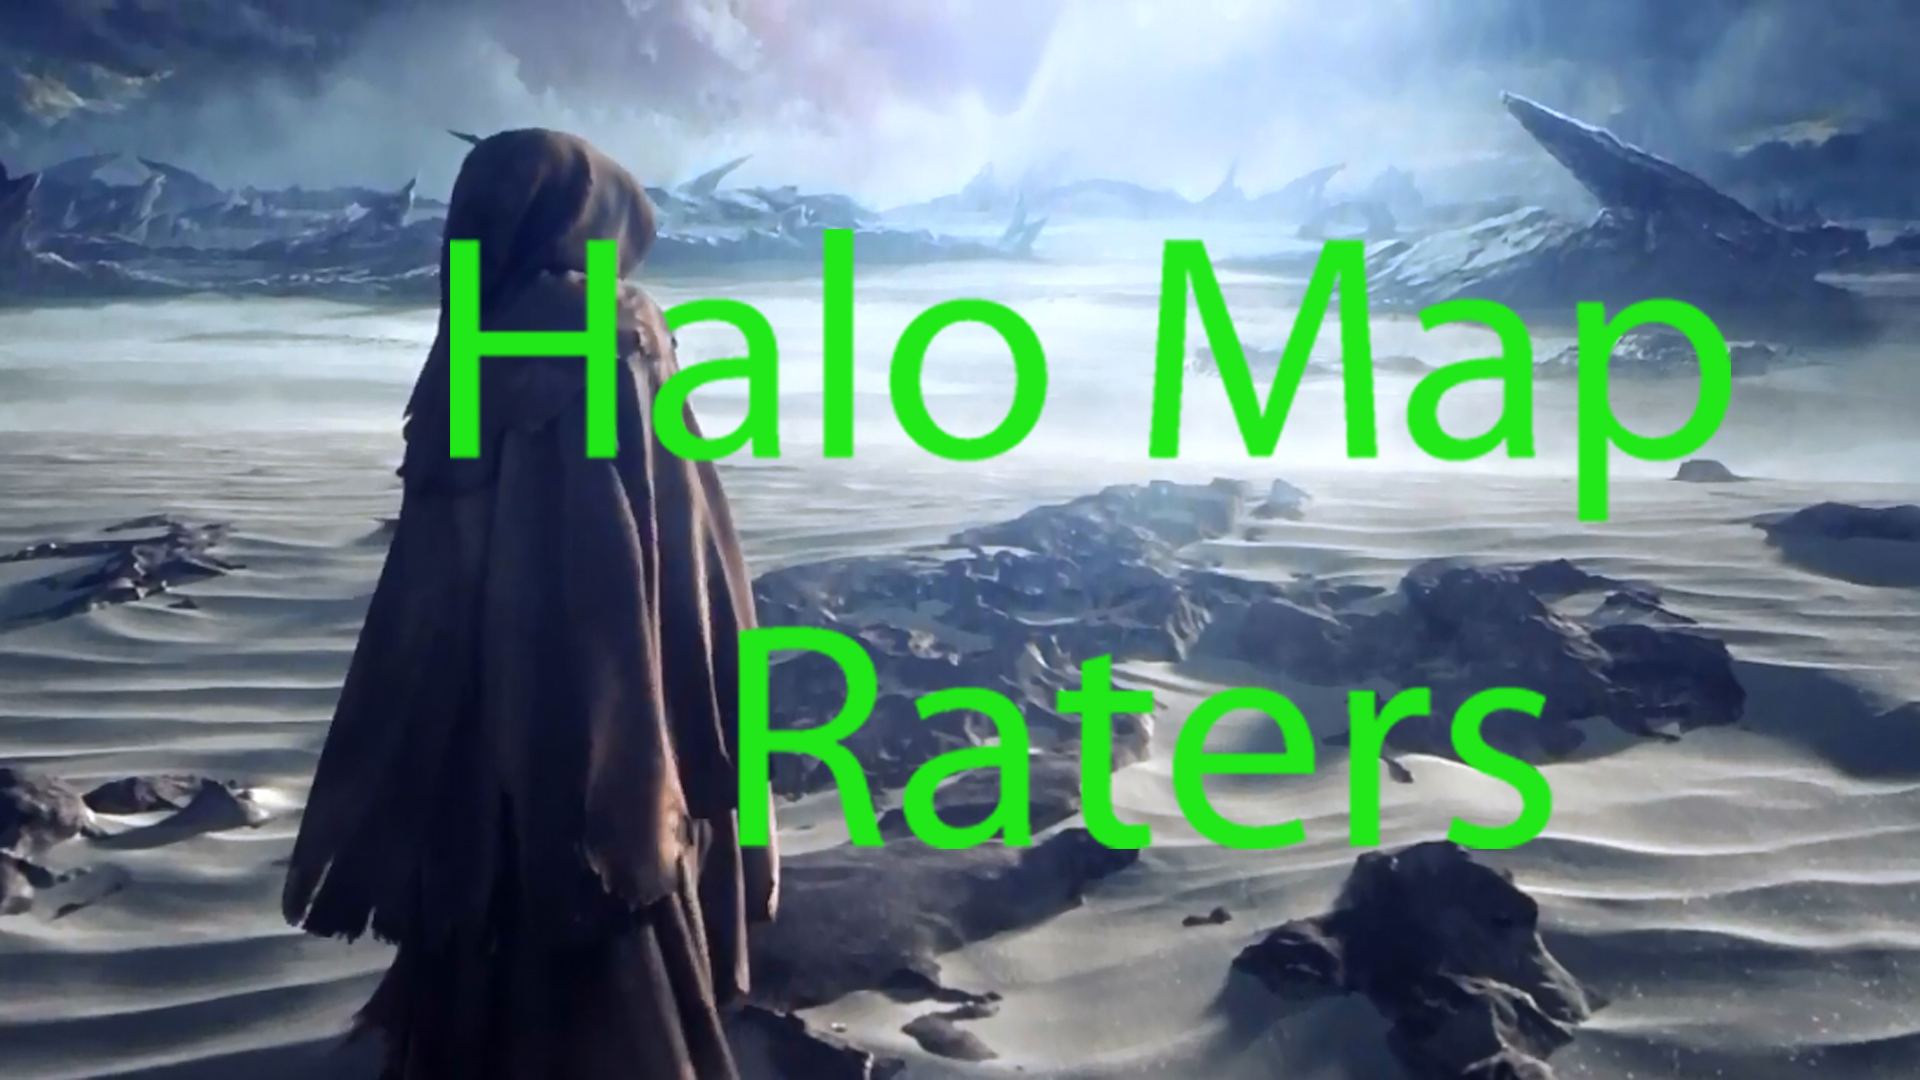 Halo Map Raters Halo 5: Guardians